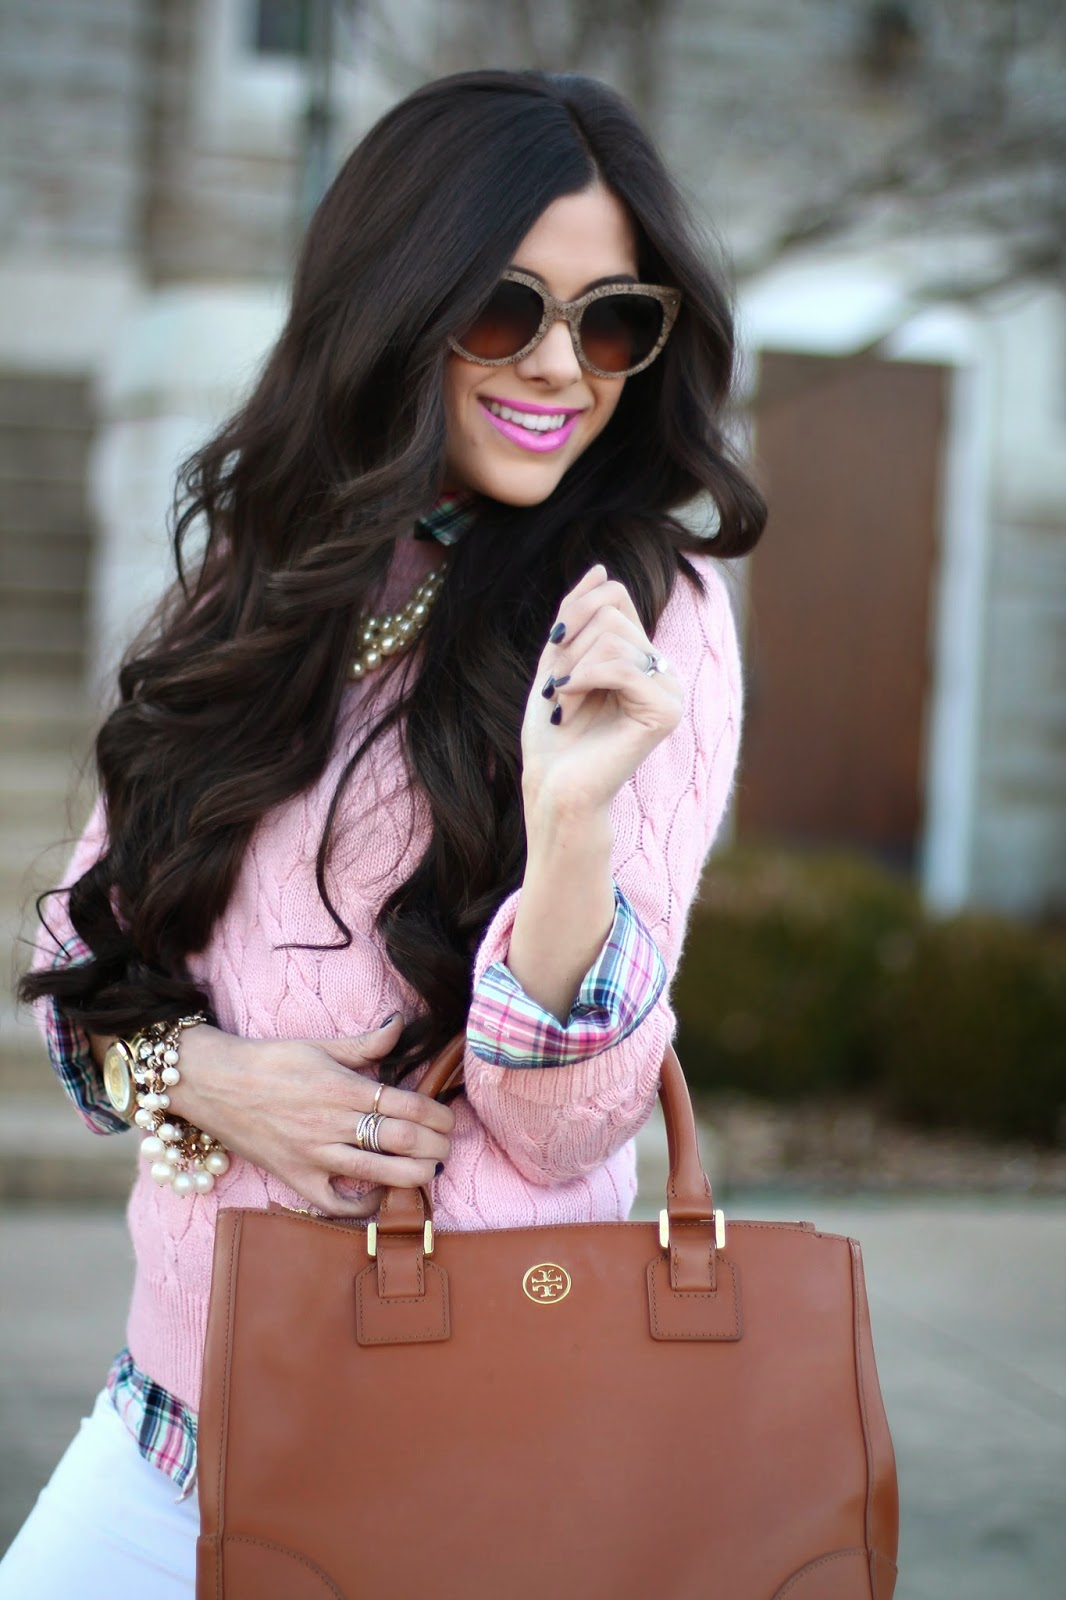 www.TheSweetestThingBlog.com, Emily Gemma, Spring Fashion, Pinterest Spring Fashion, Tory Burch Robinson Tote, Tory Burch Kiernan Boots, PRada sunglasses, David Yurman Ring, David Yurman double x, White pants in winter, pastel sweater, pastel plaid, cable knit sweater with plaid, pearls